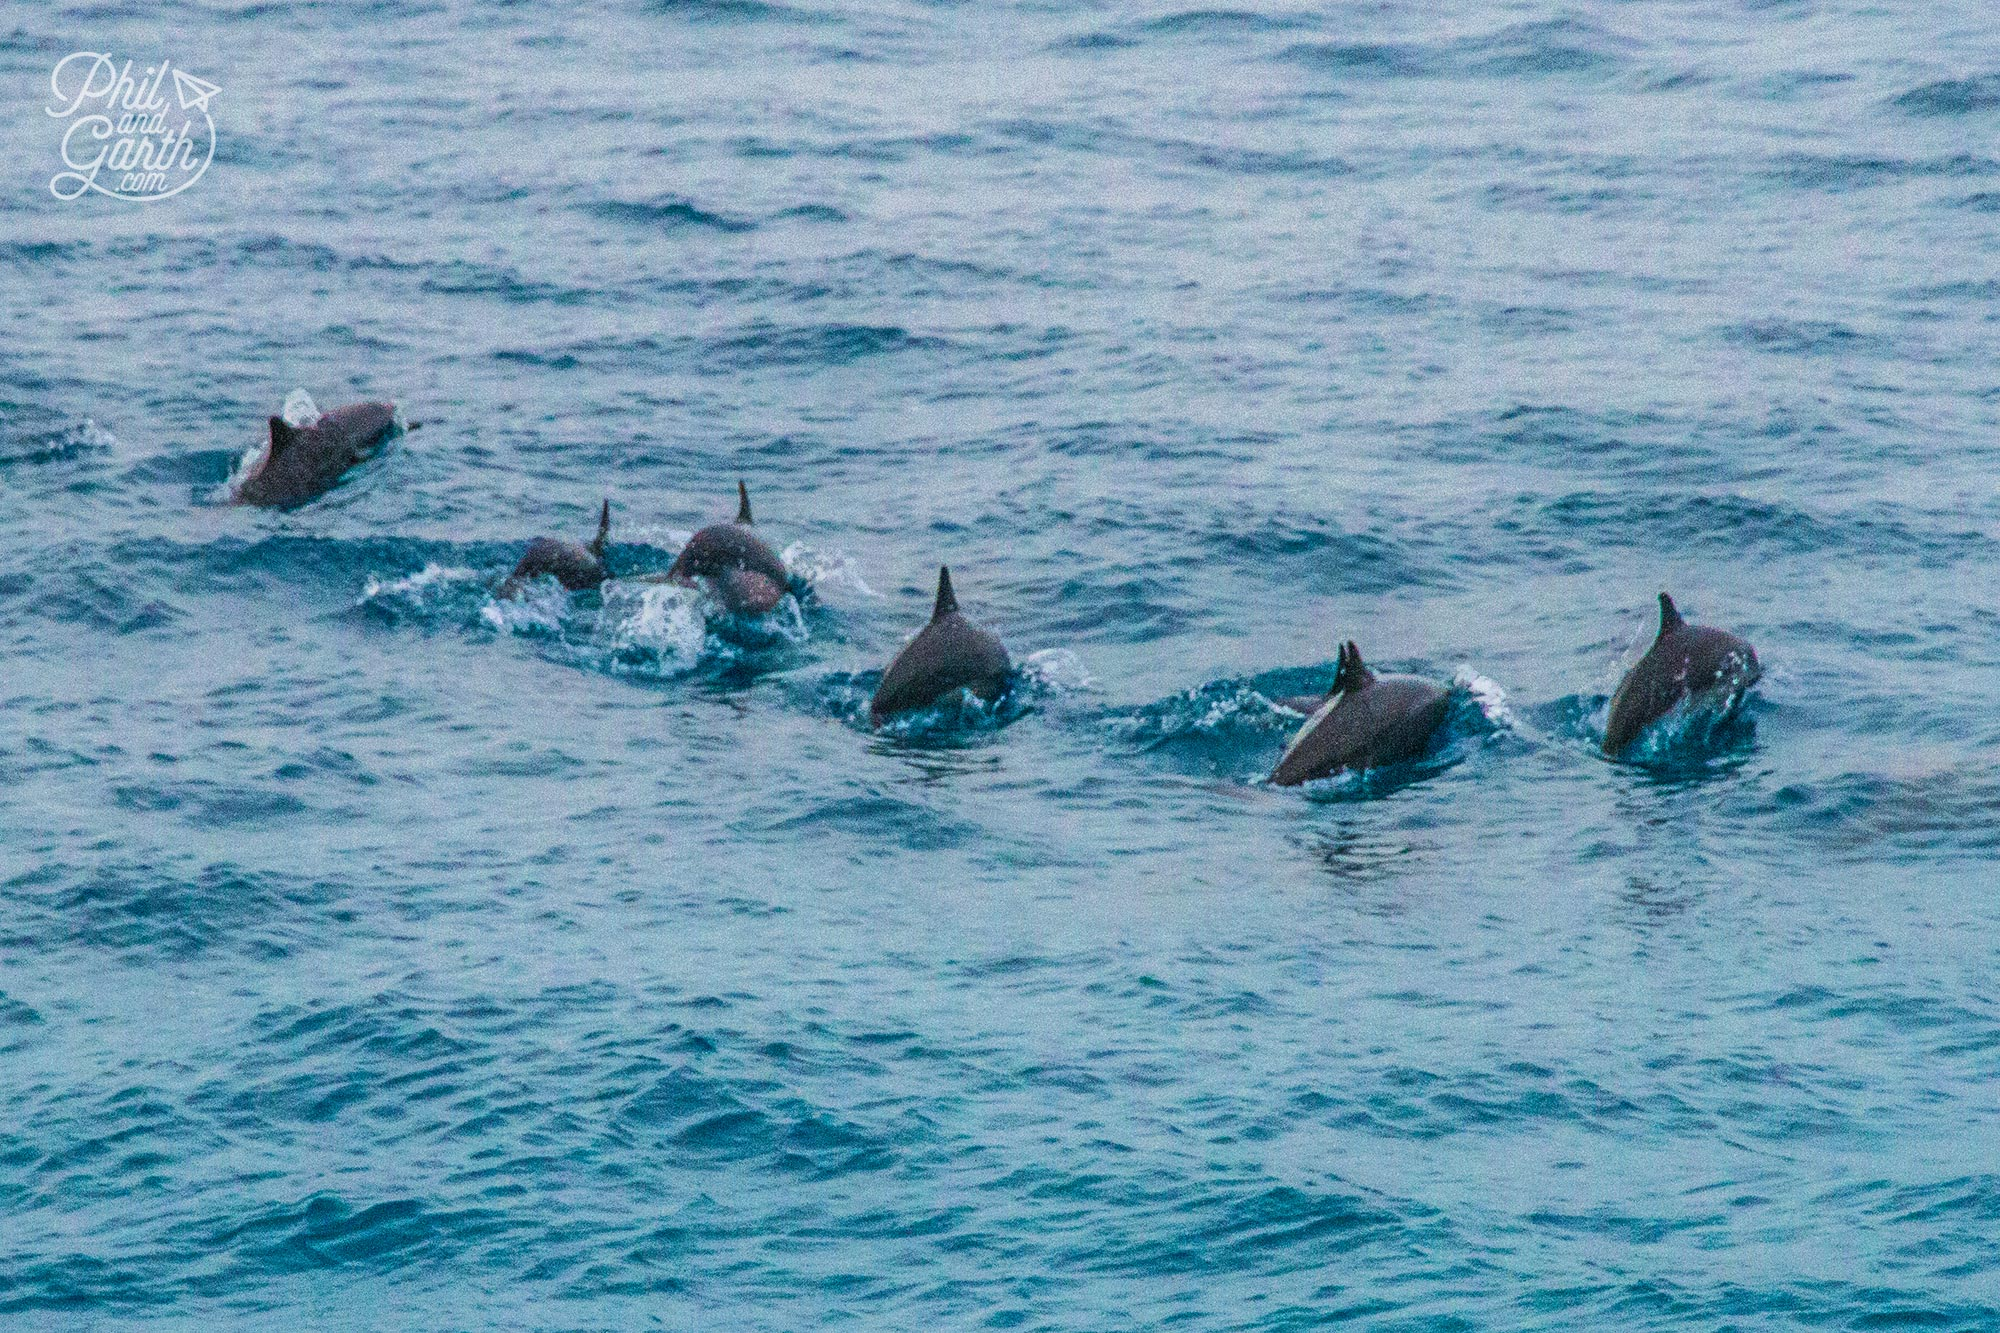 How wonderful - a pod of dolphins!